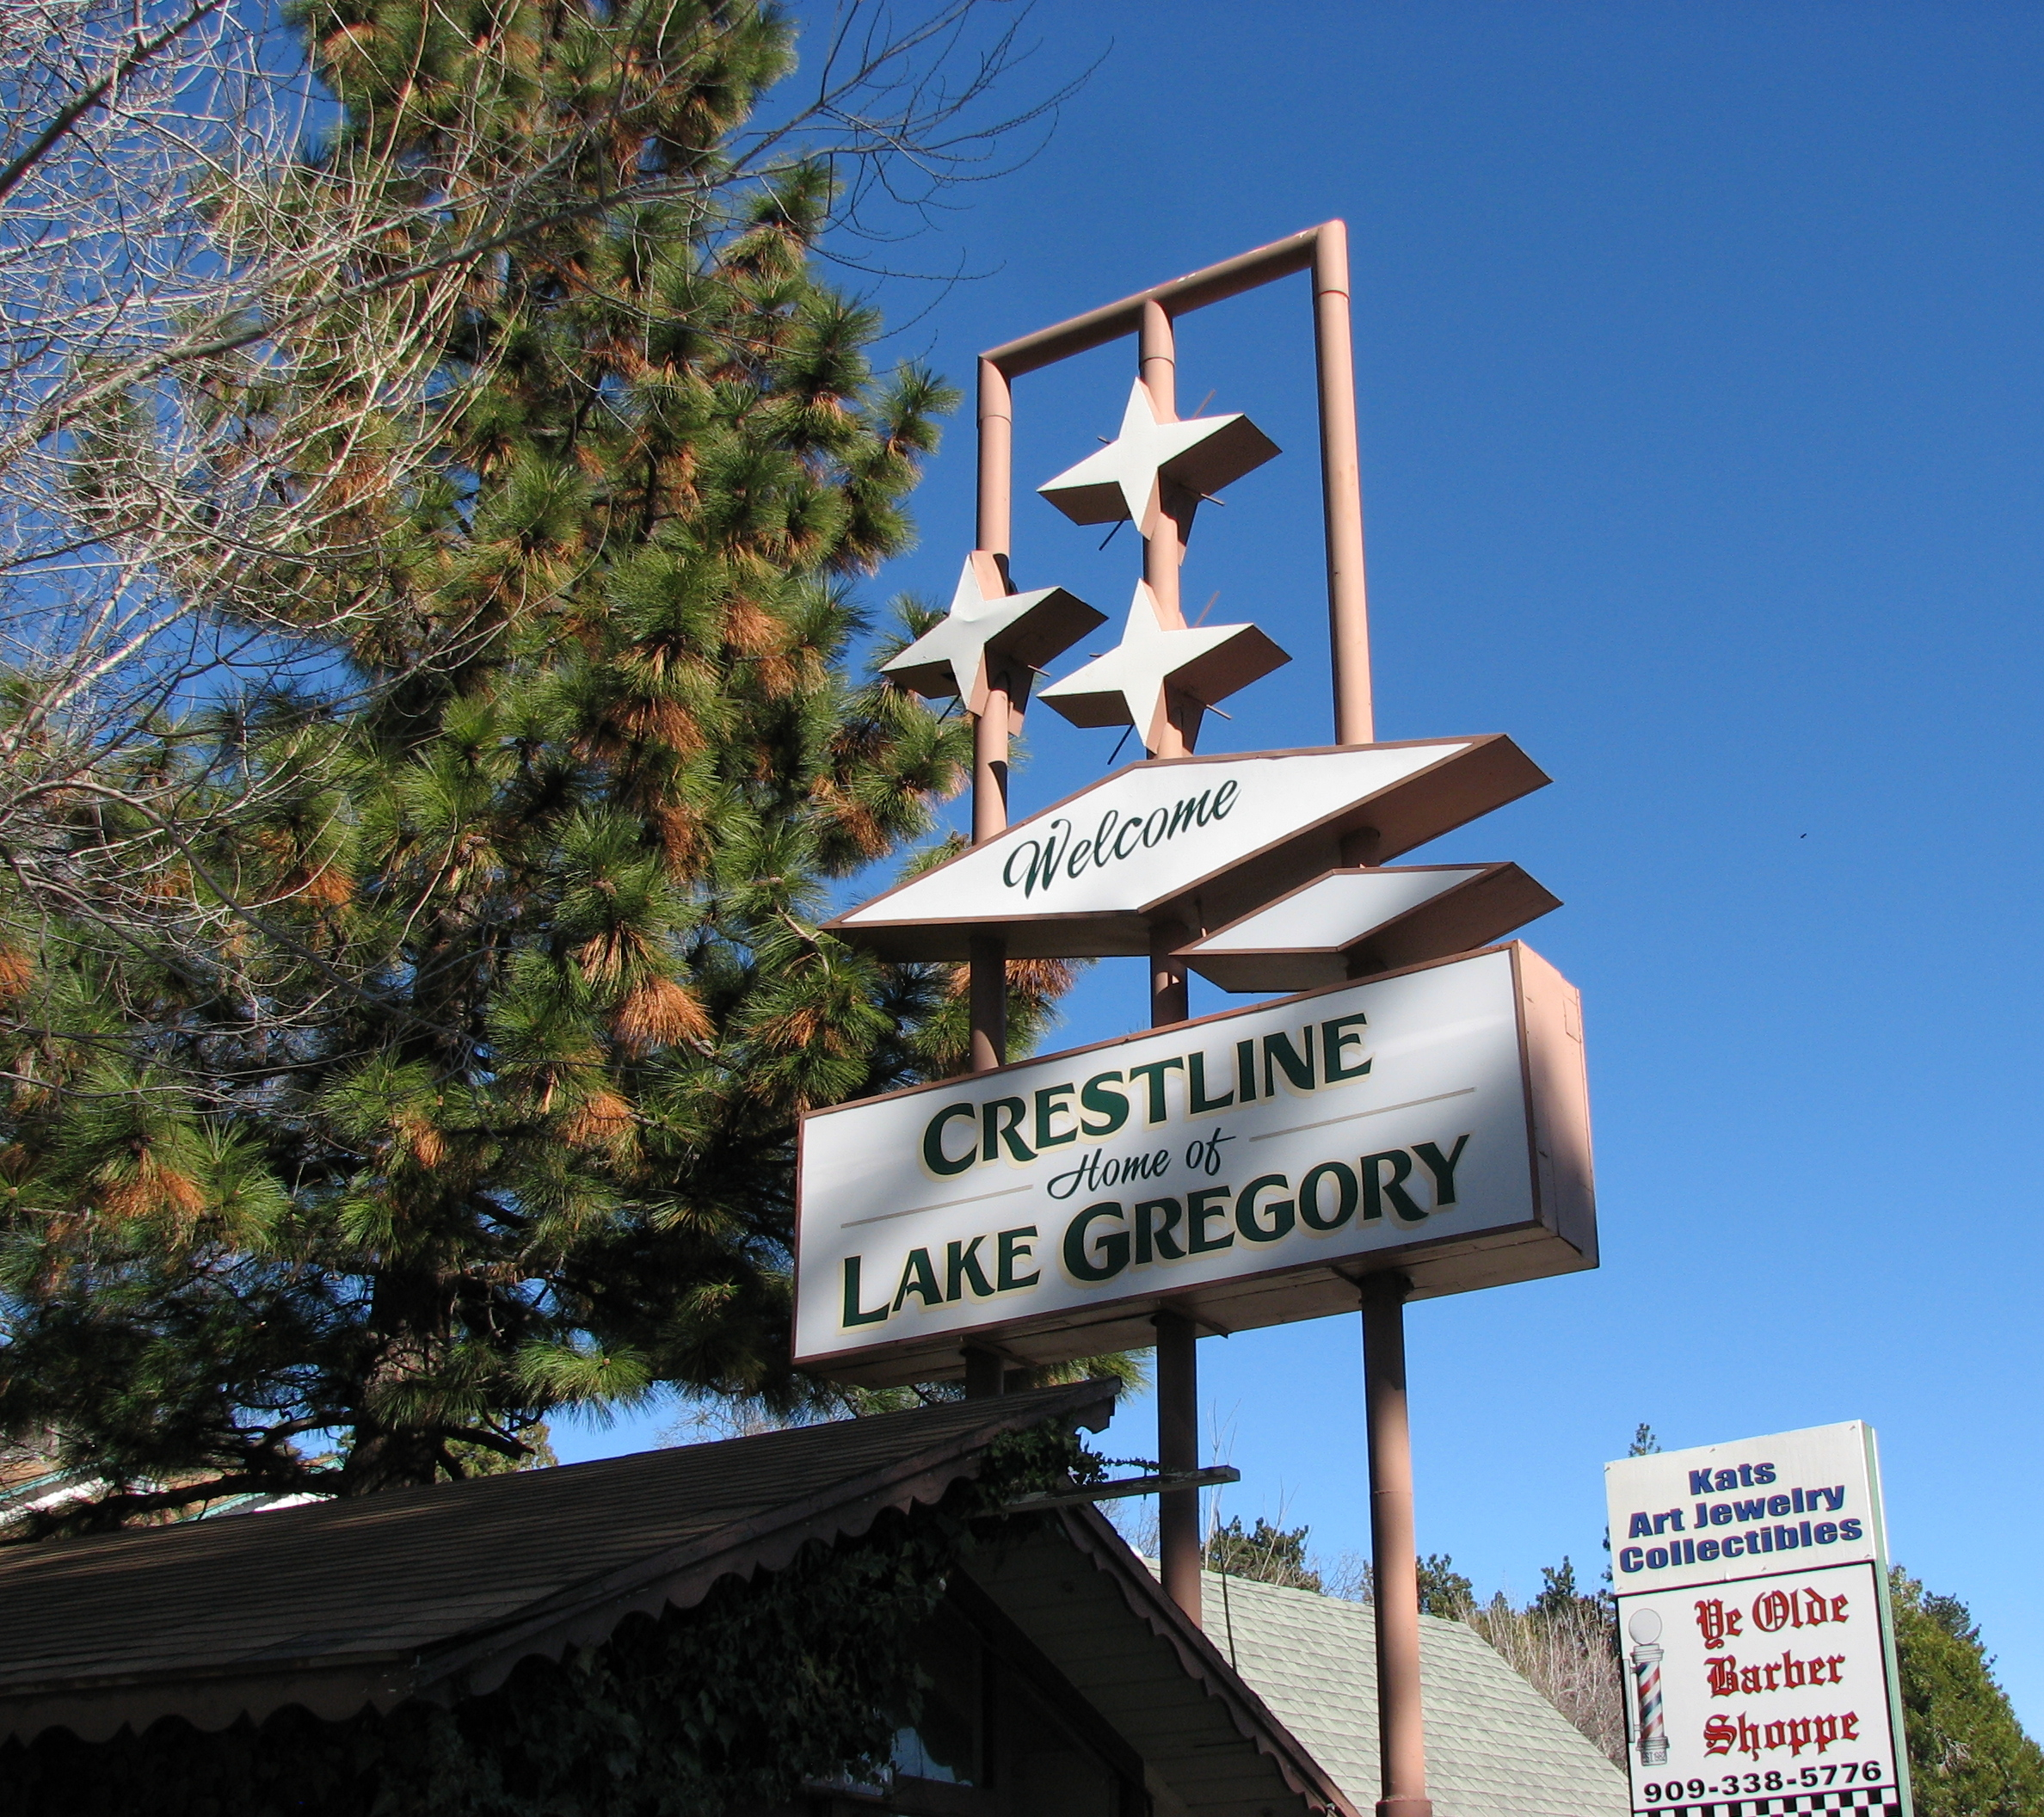 Googie-style sign - Crestline, California U.S.A. - December 25, 2015